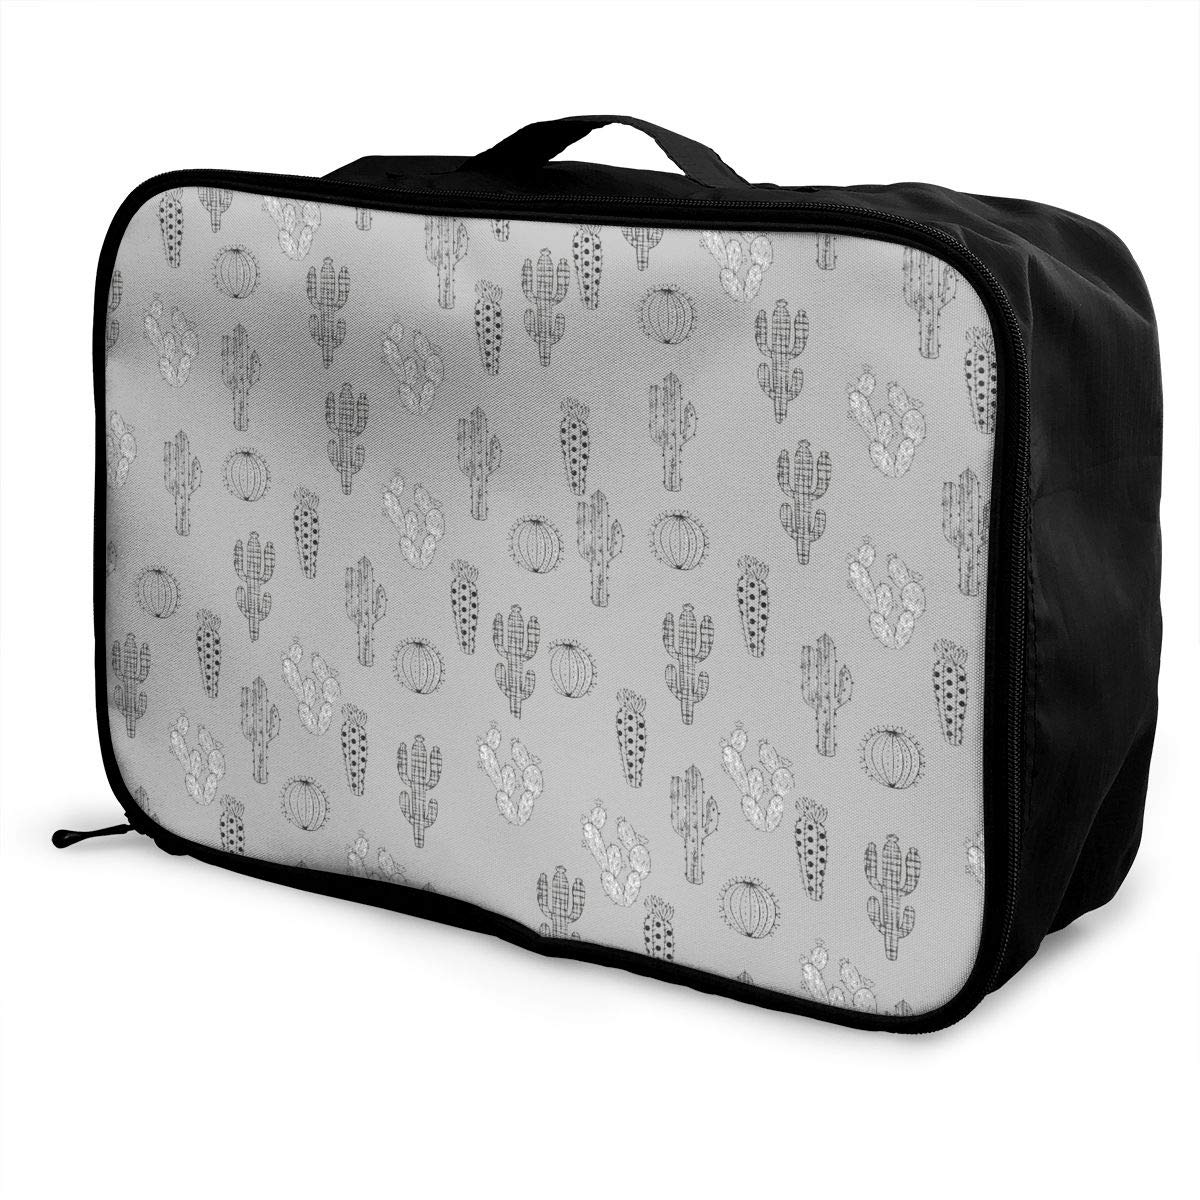 Women /& Men Foldable Travel Duffel Bag Black And White Cactus Grey For Luggage Gym Sports